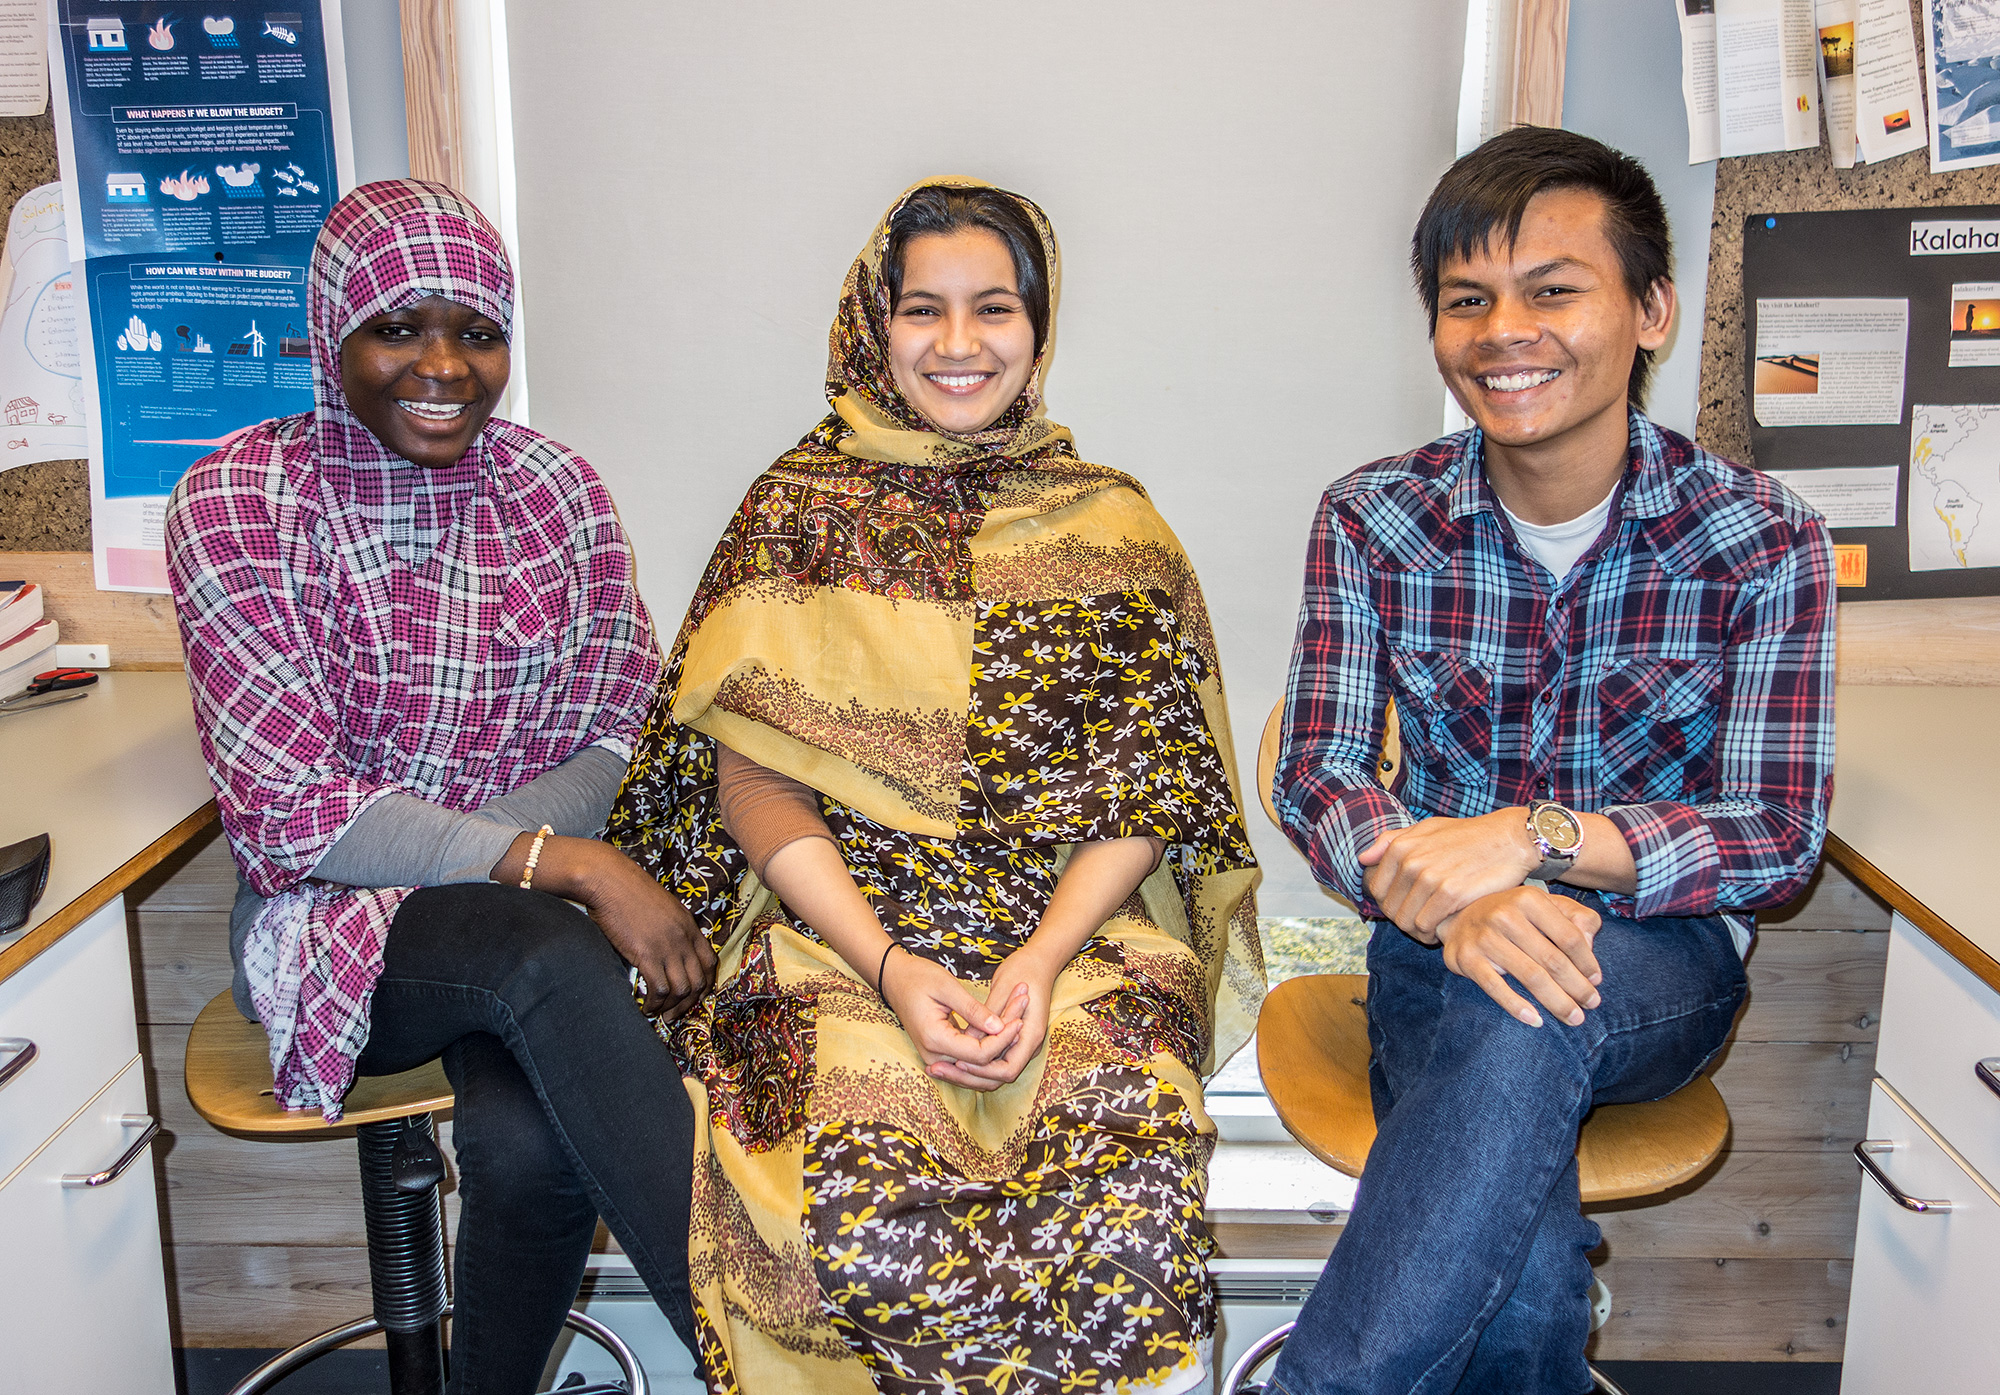 Samira (Niger), Sumaya (Western Sahara) and Mean (Cambodia) - students currently on our Foundation Year Programme